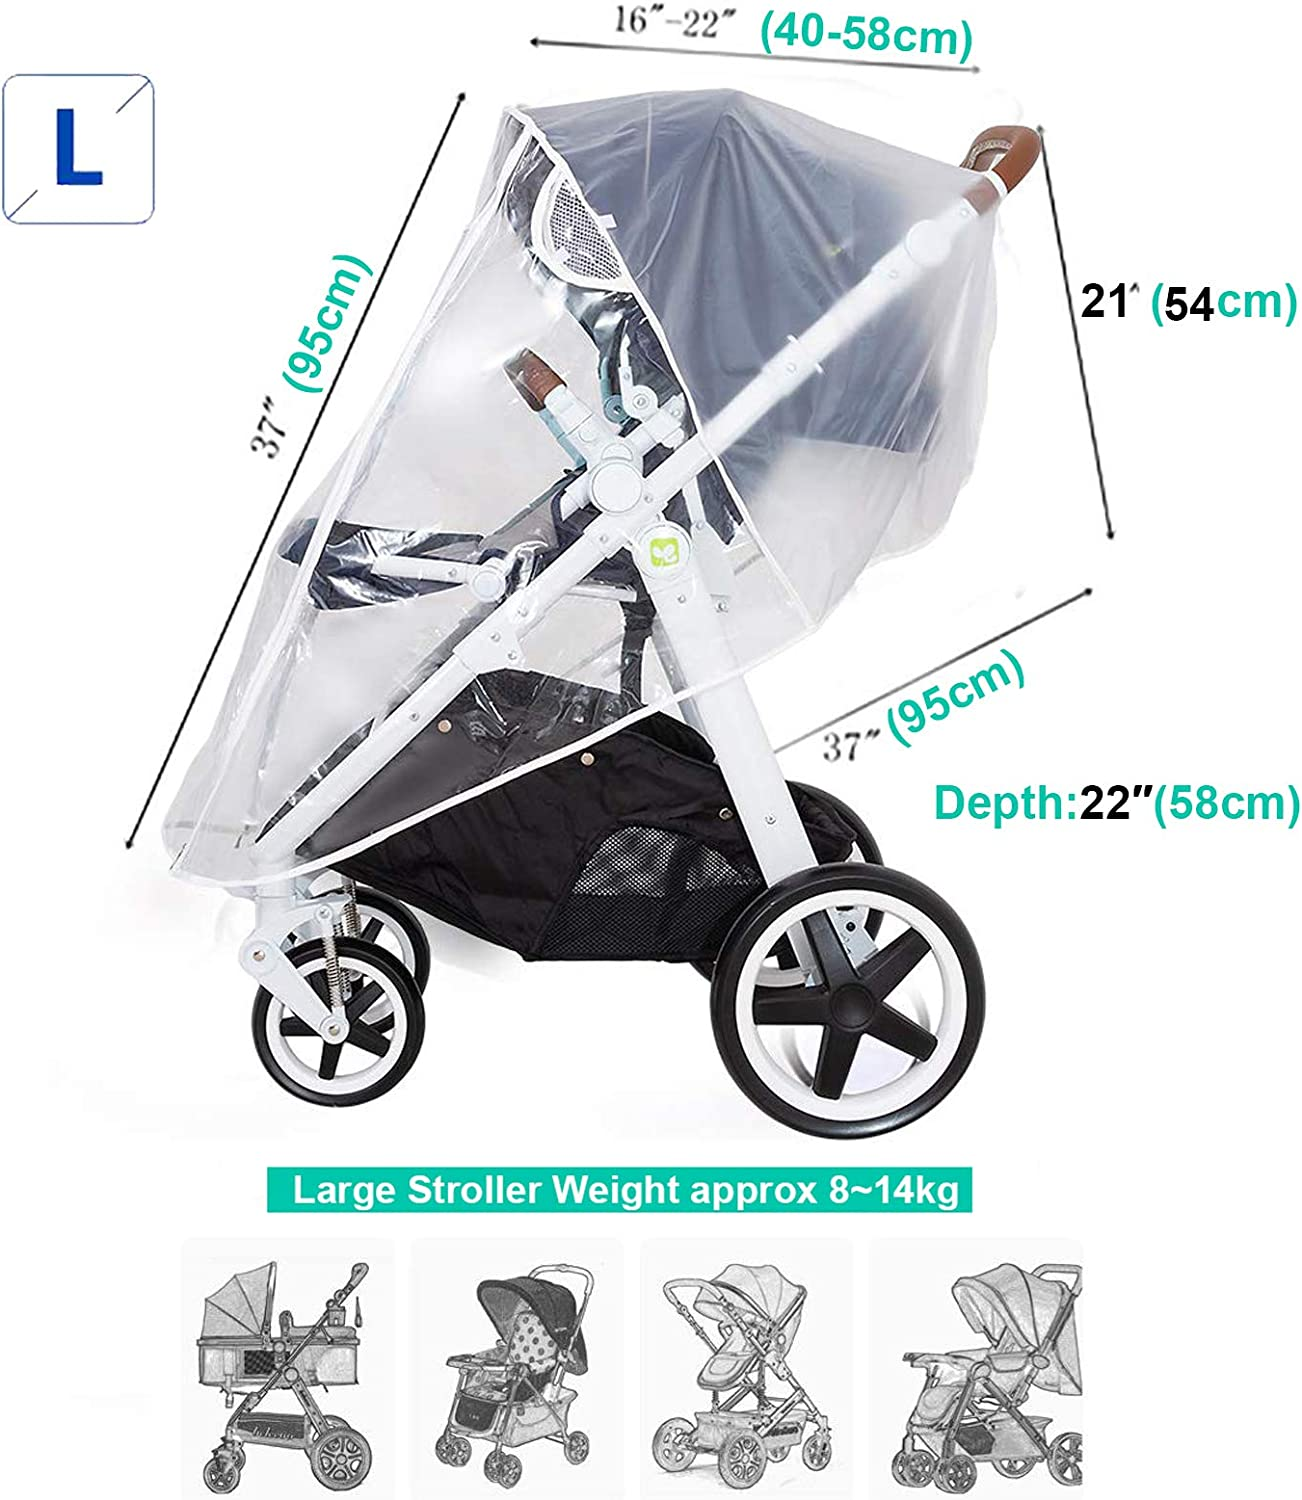  PVC-Free Stroller Buggy Air Circulating Water Resistant and Durable Baby Against Rain Snow Wind Sleet Dust Travel Outdoor Clear EVA Transparent Black-L Universal Rain Cover for Pushchair